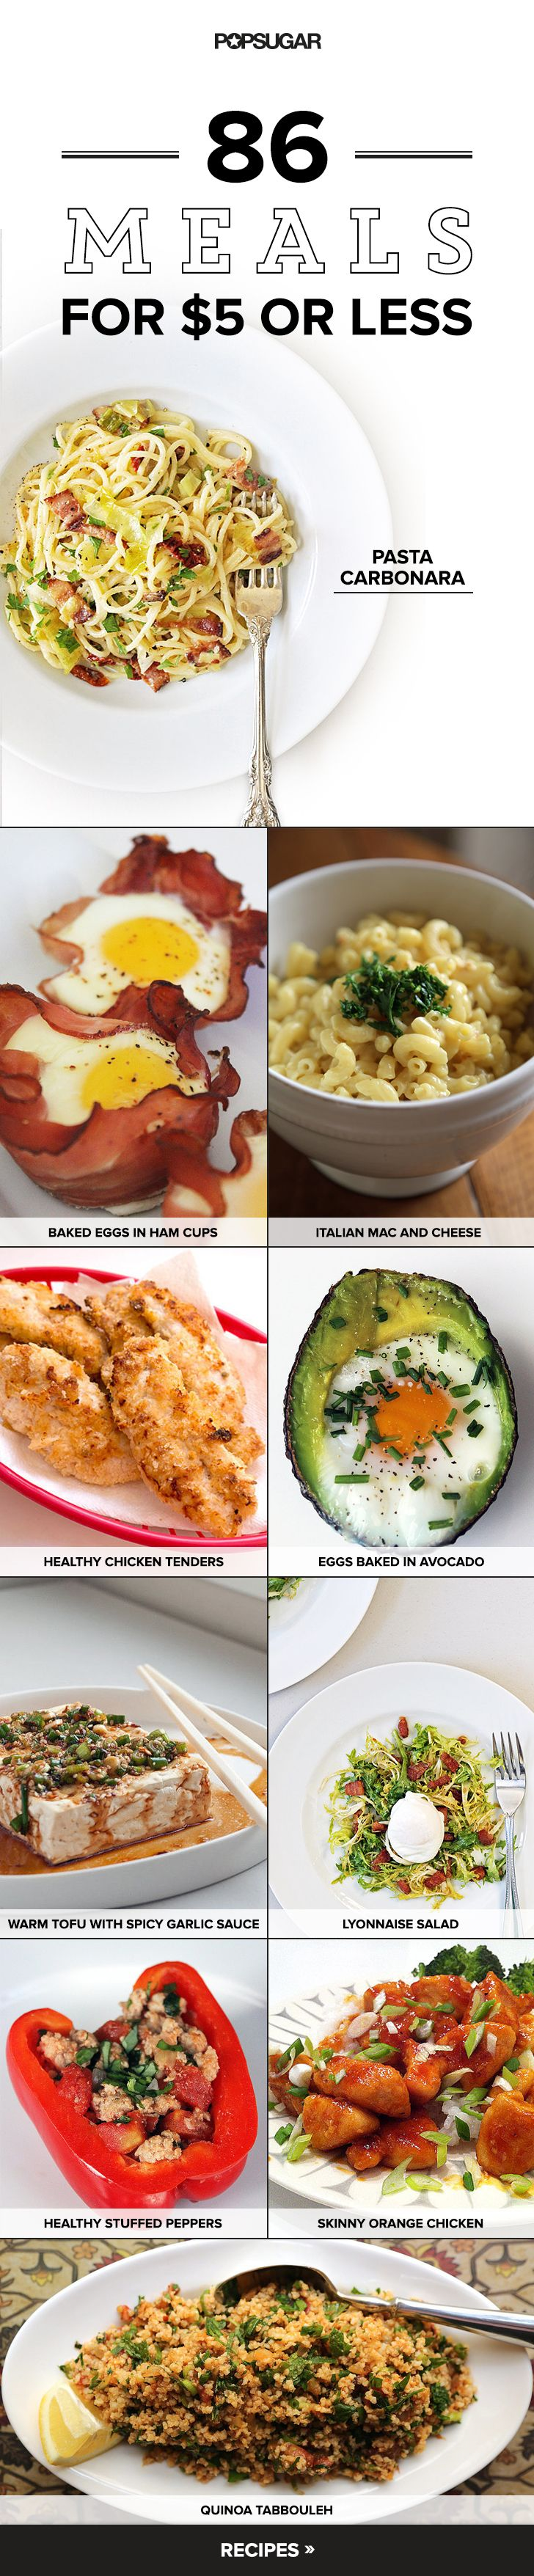 Best the a z of food recipes images on pinterest clean